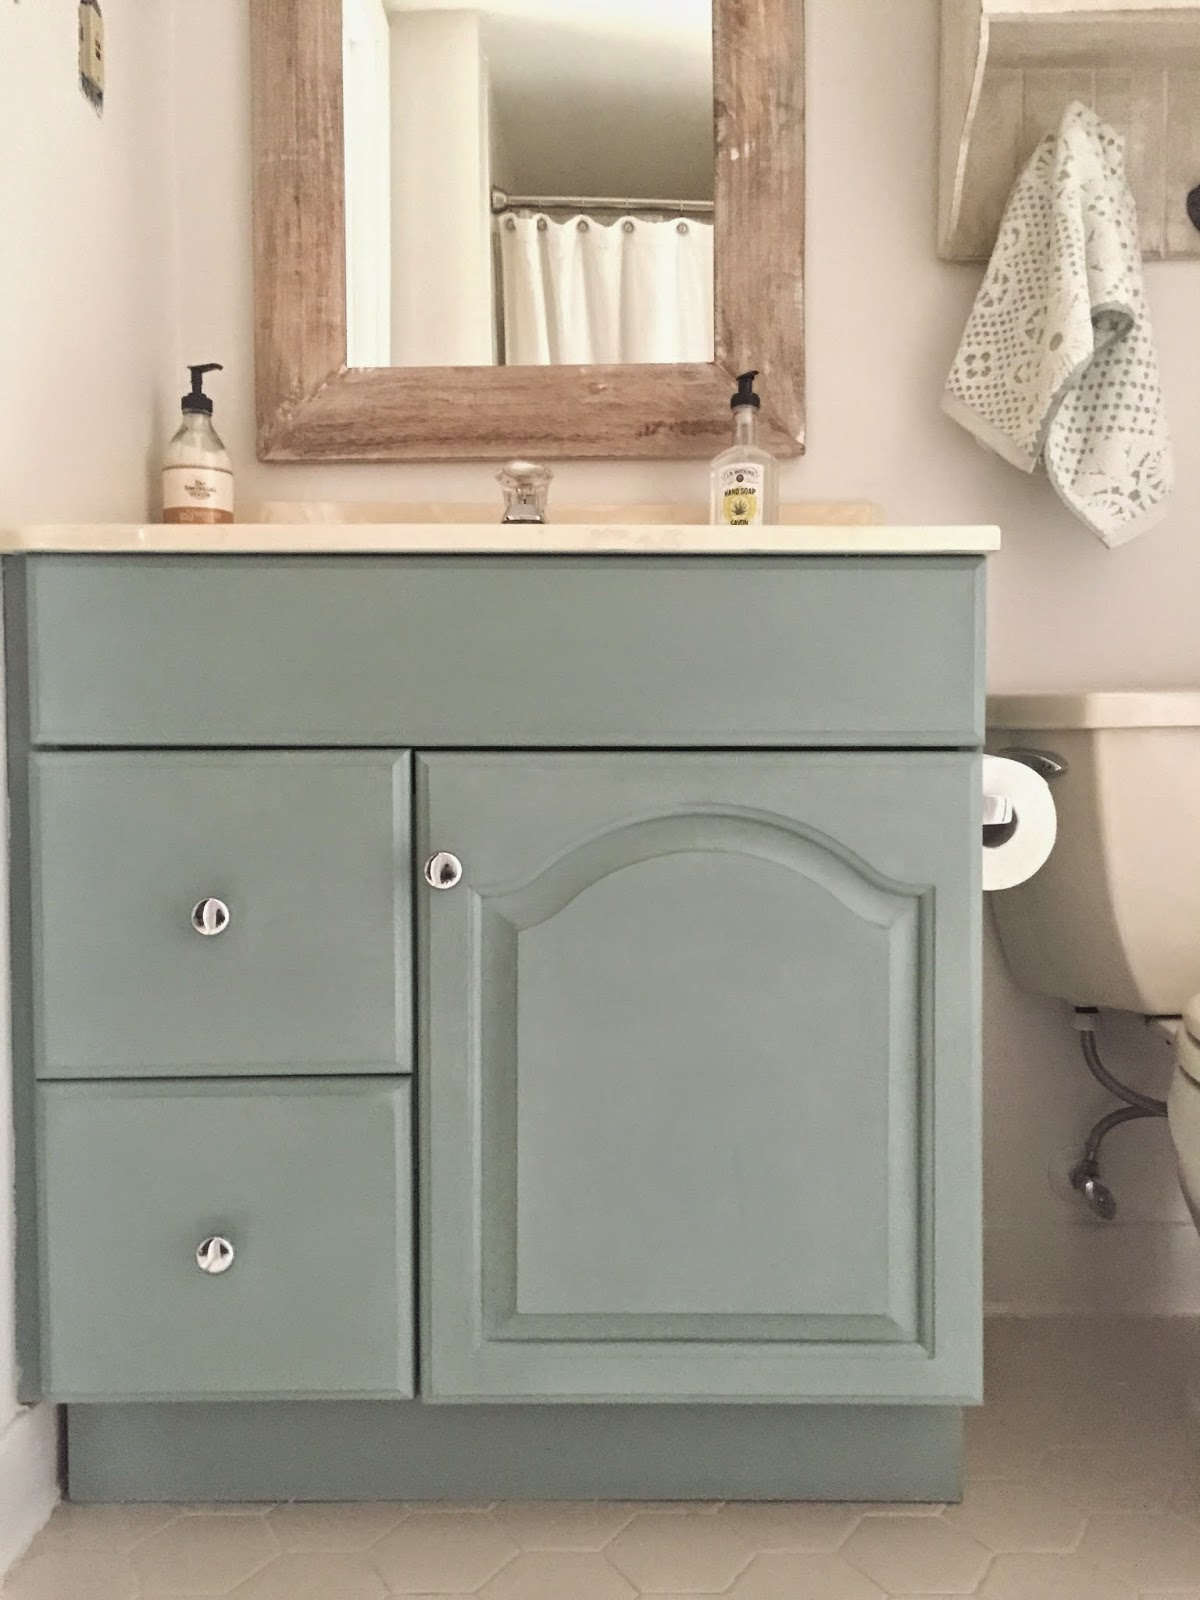 Annie sloan chalk paint bathroom cabinets - I Just Wiped The Entire Cabinet Down And Then Started Painting Afterwards I Sealed It With Annie Sloan Wax